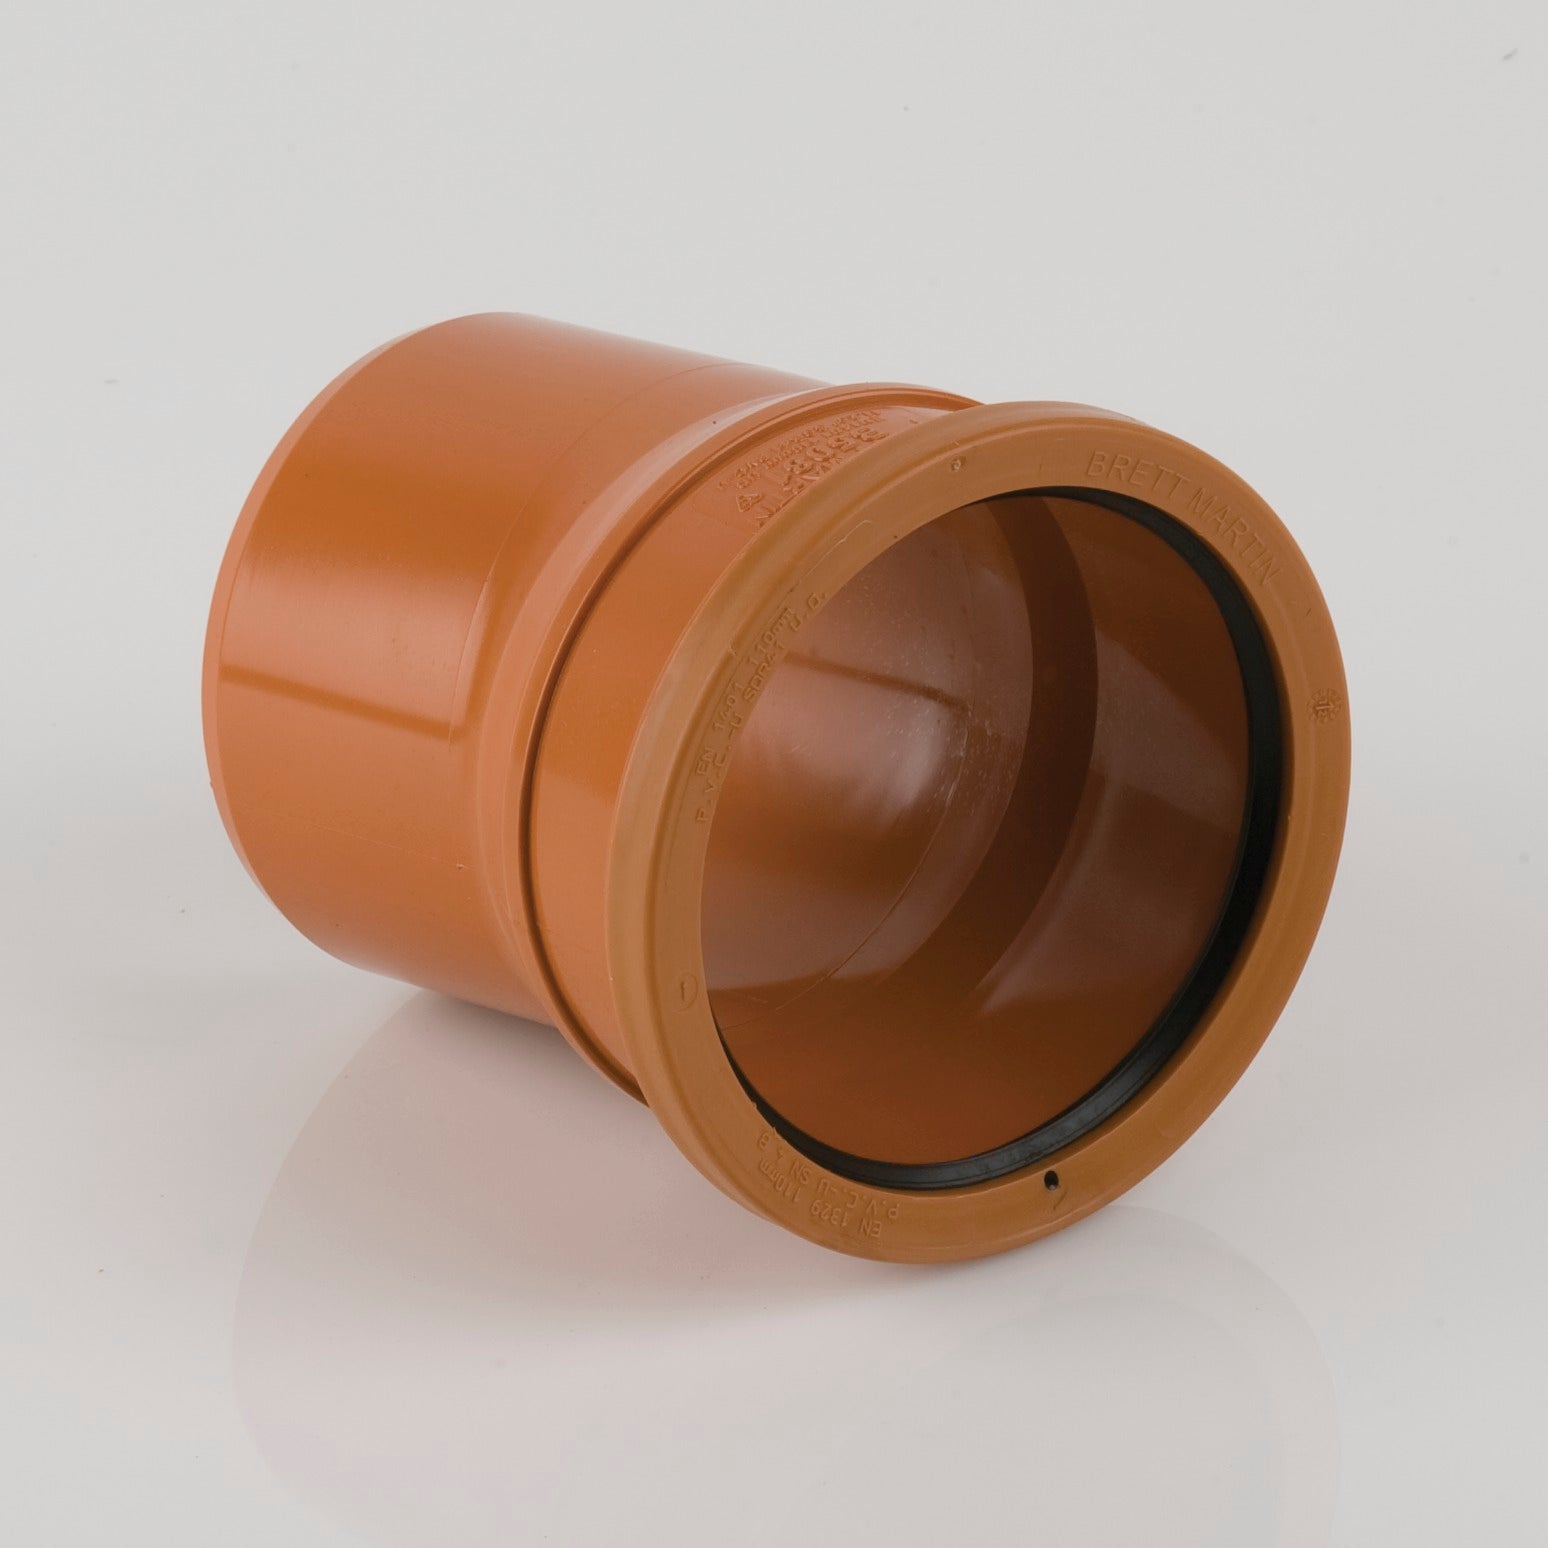 11.25 Degrees 110mm Single Socket Pipe Bend (Terracotta Orange)